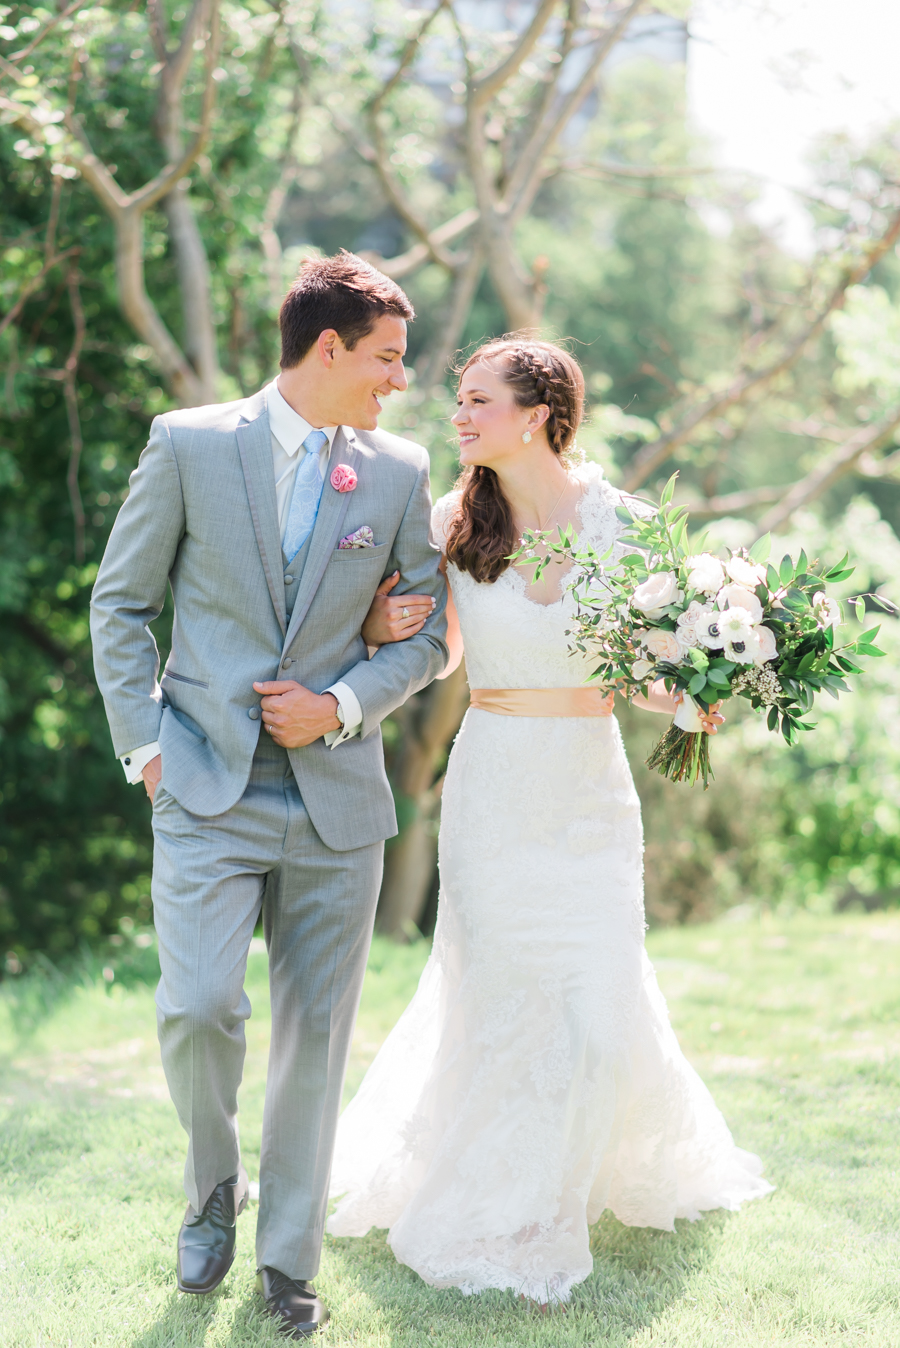 Romantic Southern Wedding Inspiration in Charlotte - photo by Maggie Mills Photography http://ruffledblog.com/romantic-southern-wedding-inspiration-in-charlotte